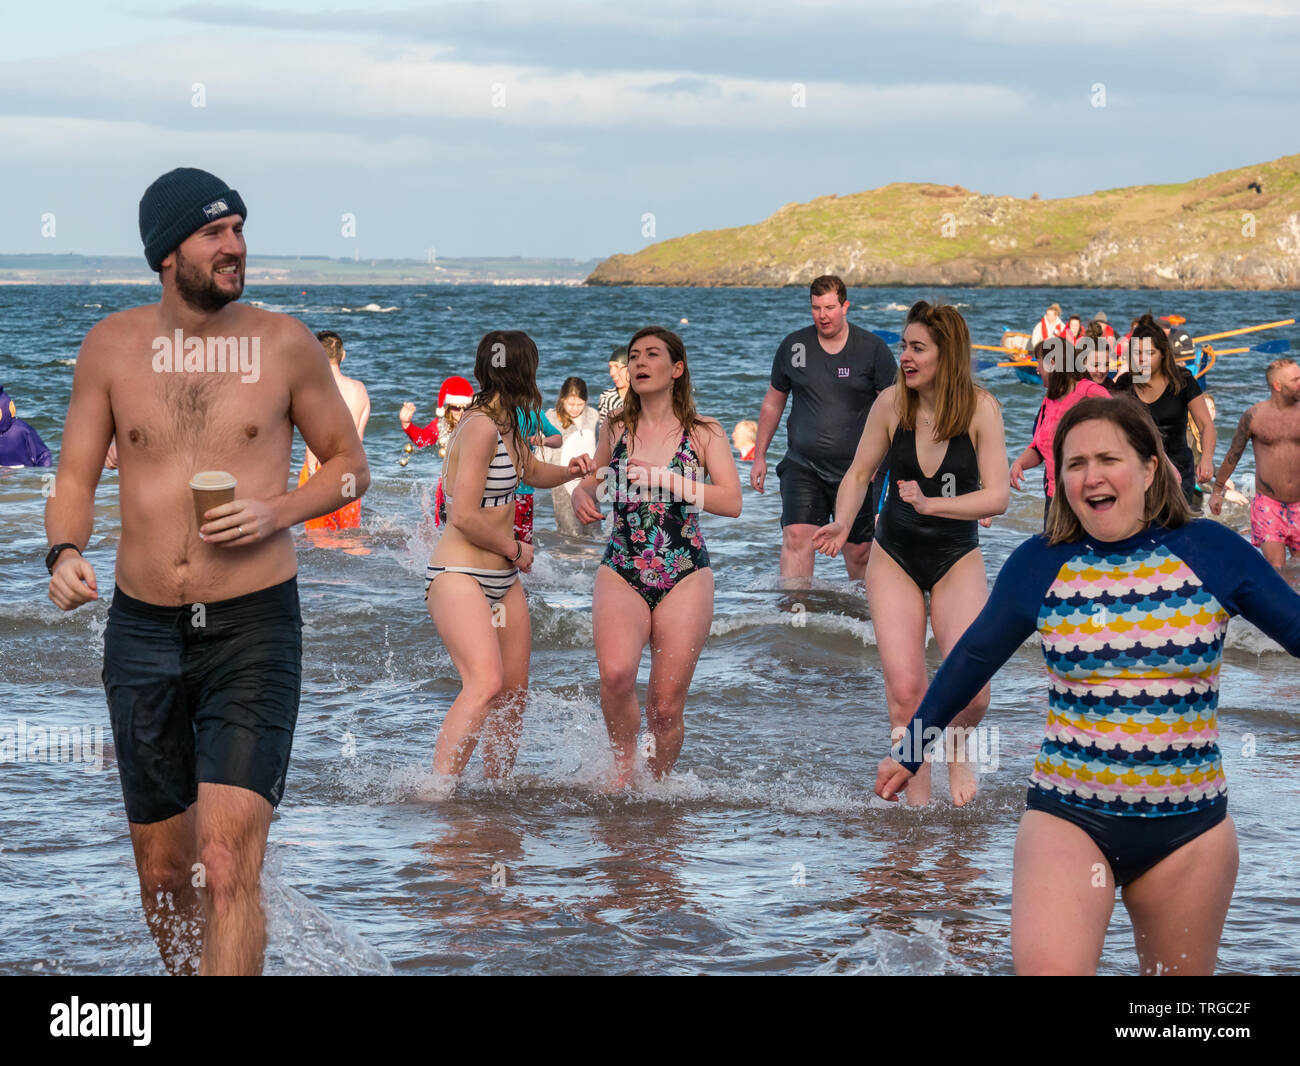 Loony Dook , New Year's Day: People brave cold water, Firth of Forth, North Berwick, East Lothian, Scotland, UK. Young women in swimsuits looking cold - Stock Image